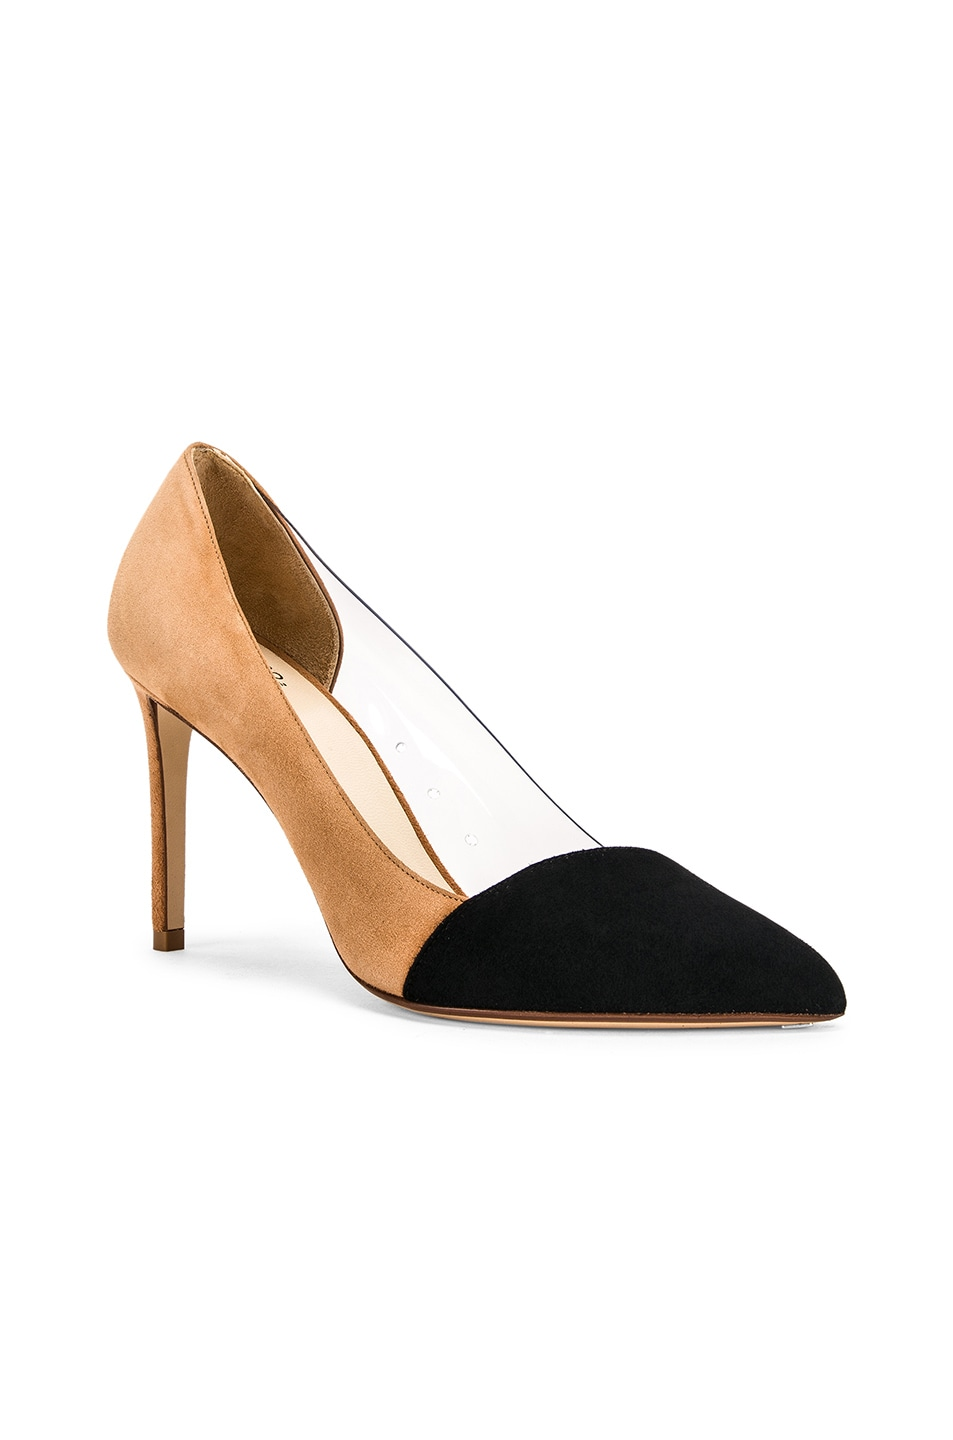 Image 2 of FRANCESCO RUSSO Two Tone PVC Heels in Black & Camel